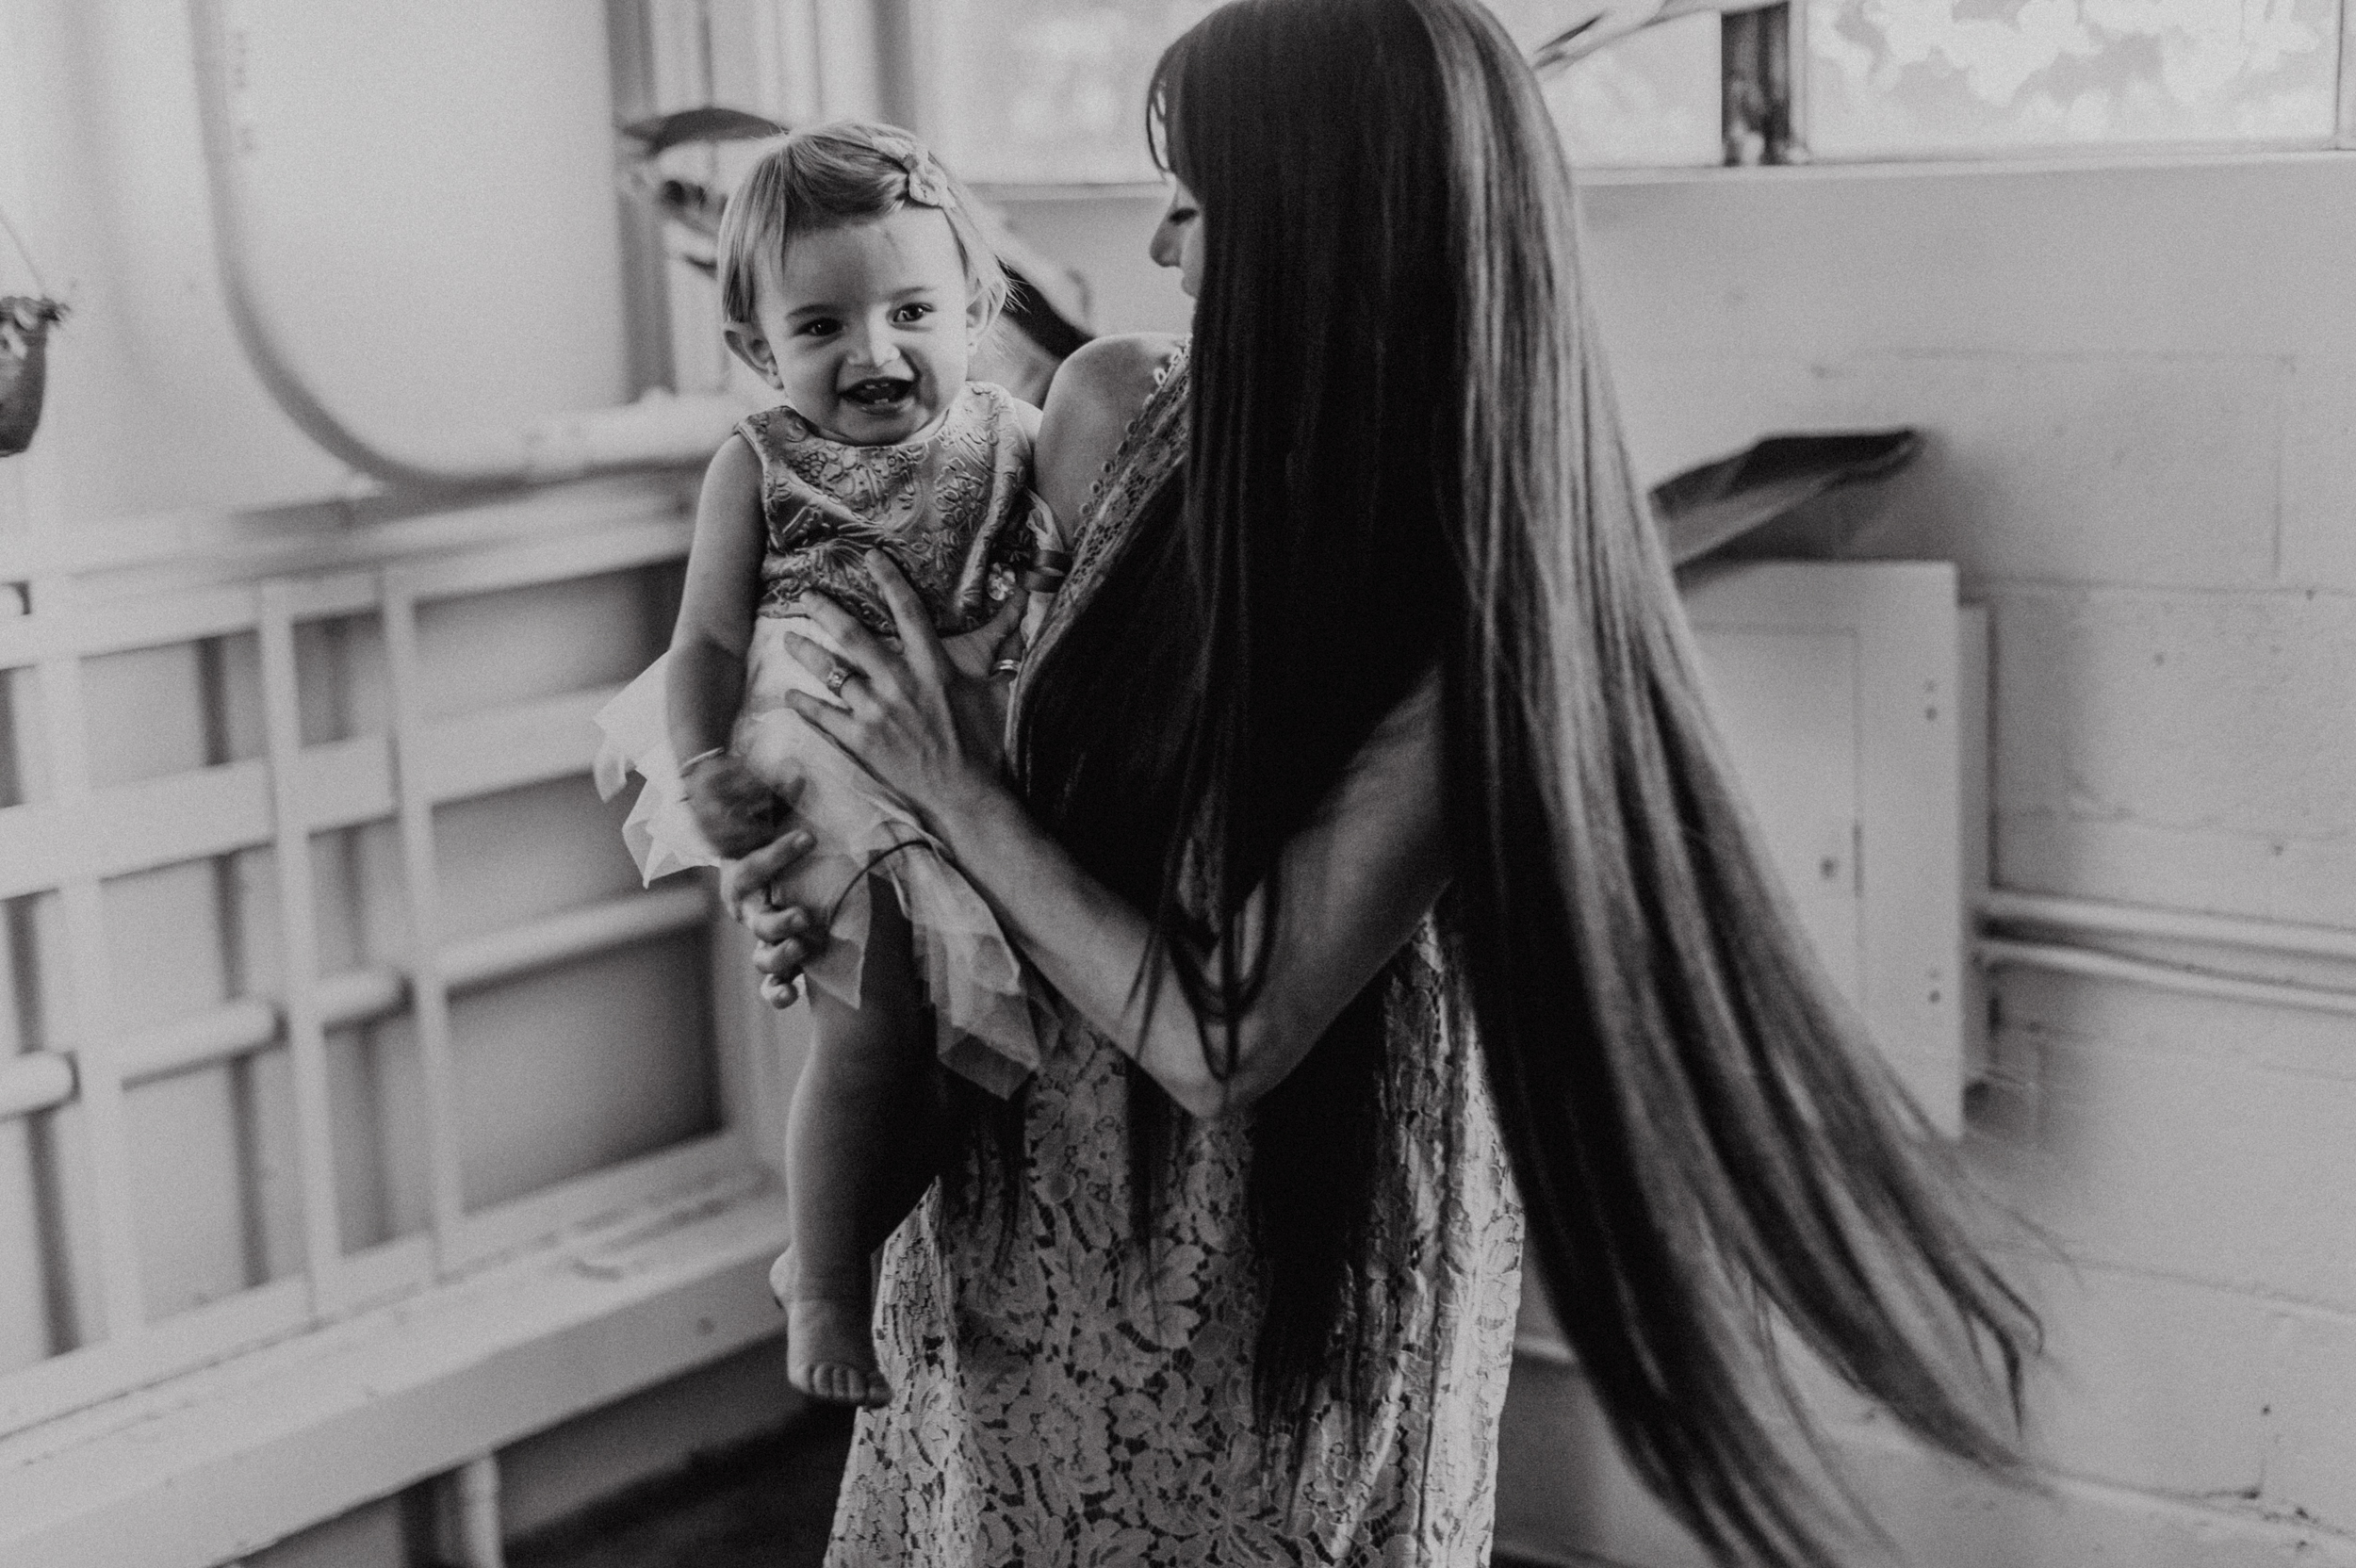 Mom with long hair spinning around with baby girl